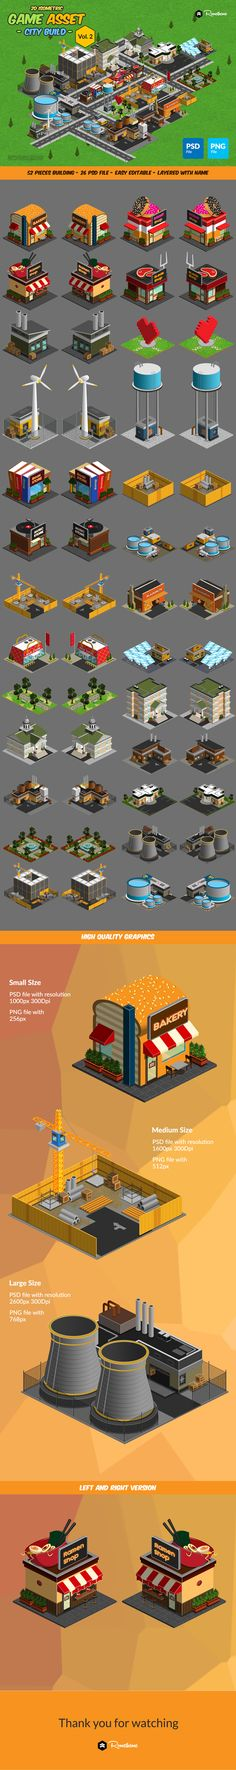 "This is the second volume of the building assets ""city building"" for game developers and game designers. suitable for city building game at social network, facebook, mobile, and pc. this asset can be used for website icons too.There are 26 available bui…"